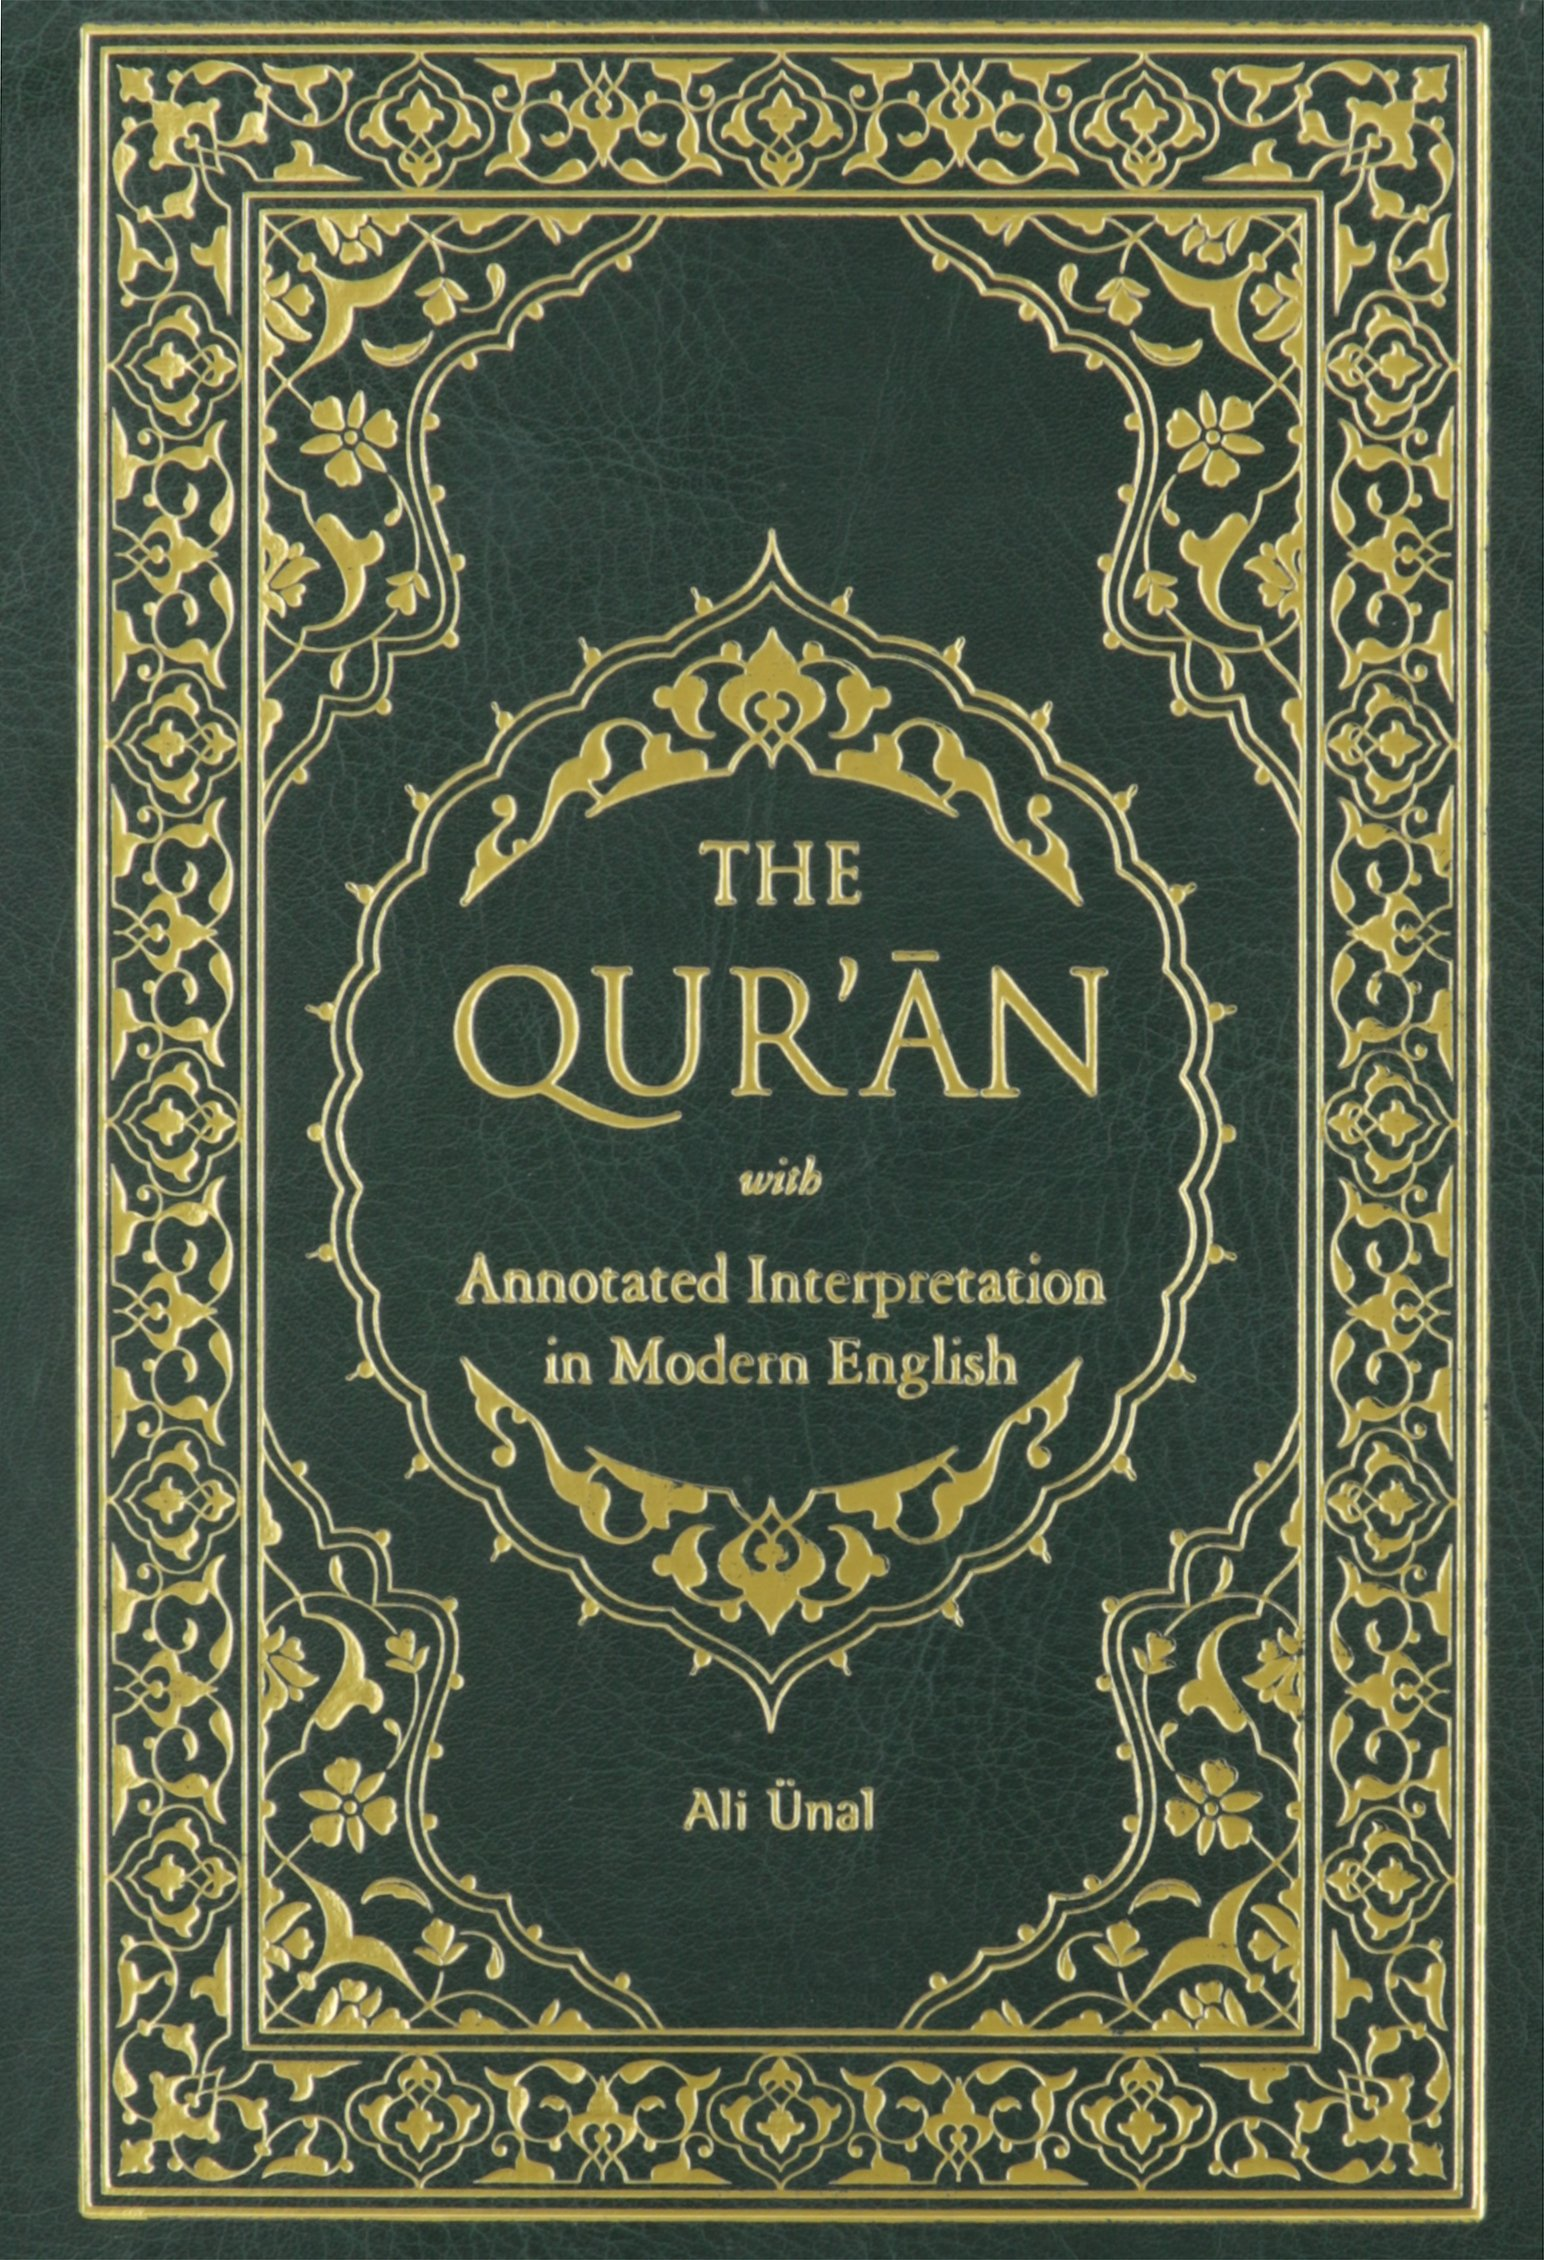 The qur an with annotated interpretation in modern english amazon co uk ali unal 9781597840002 books